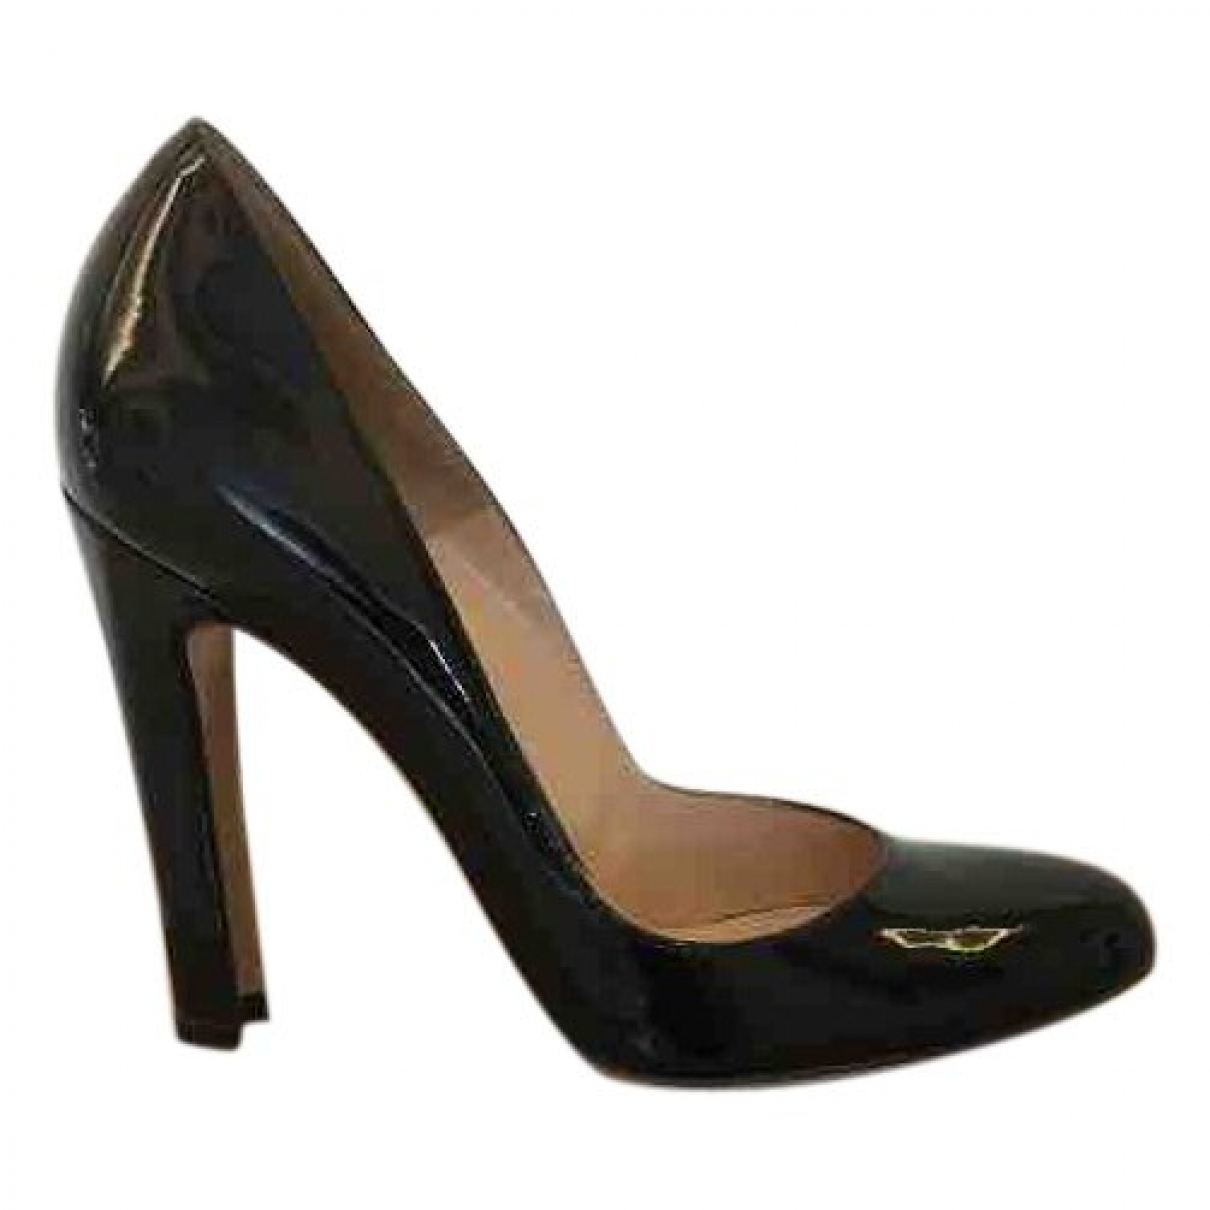 Gianvito Rossi \N Black Patent leather Heels for Women 37 EU